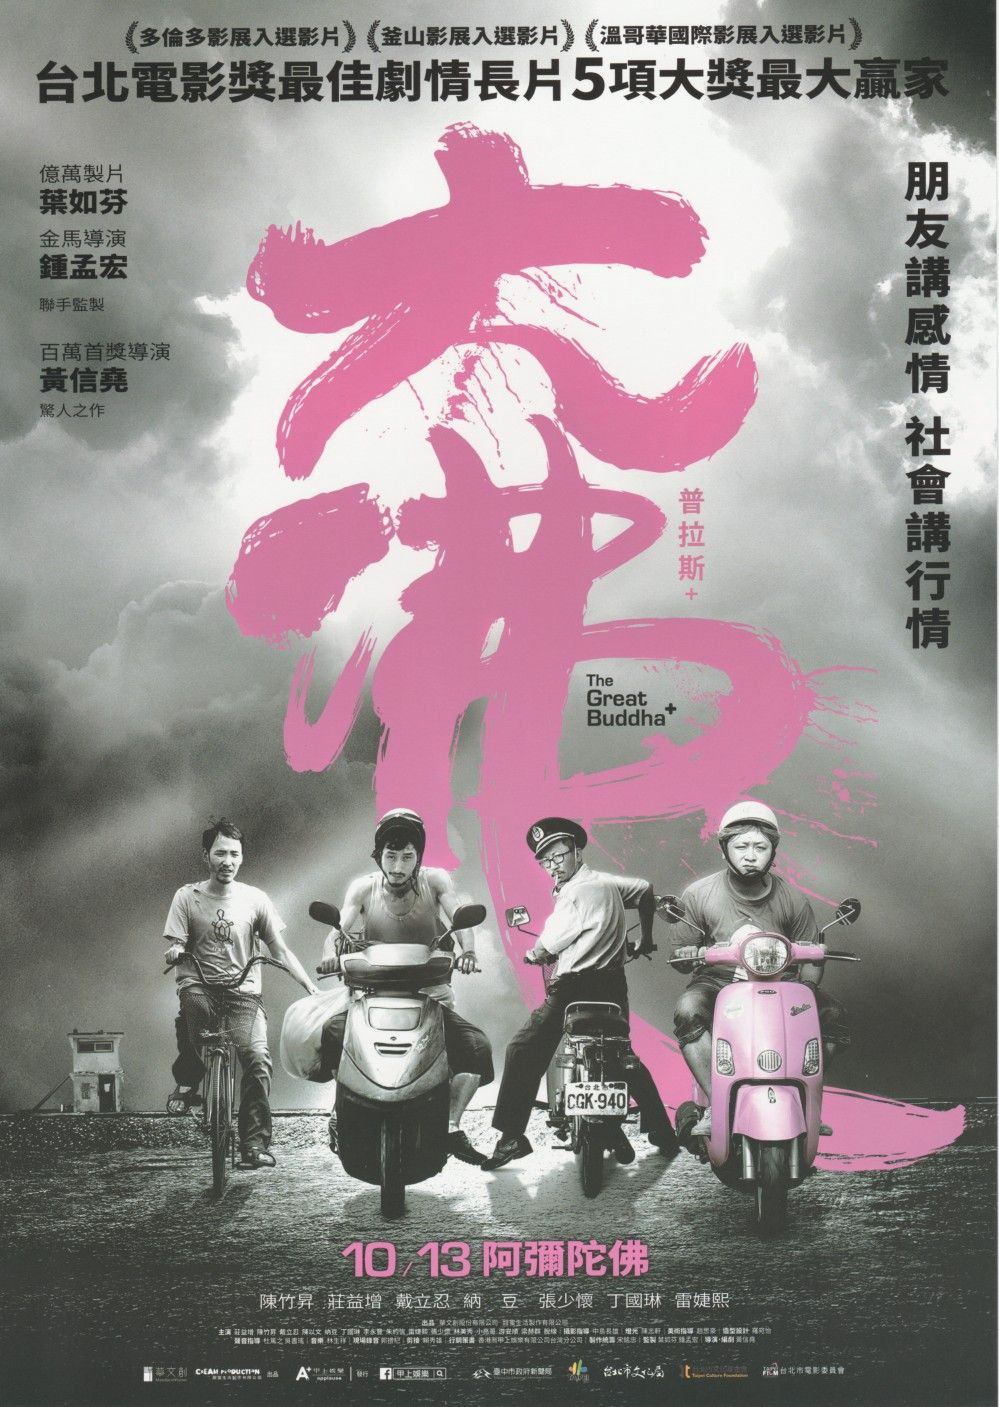 The great Buddha movie poster